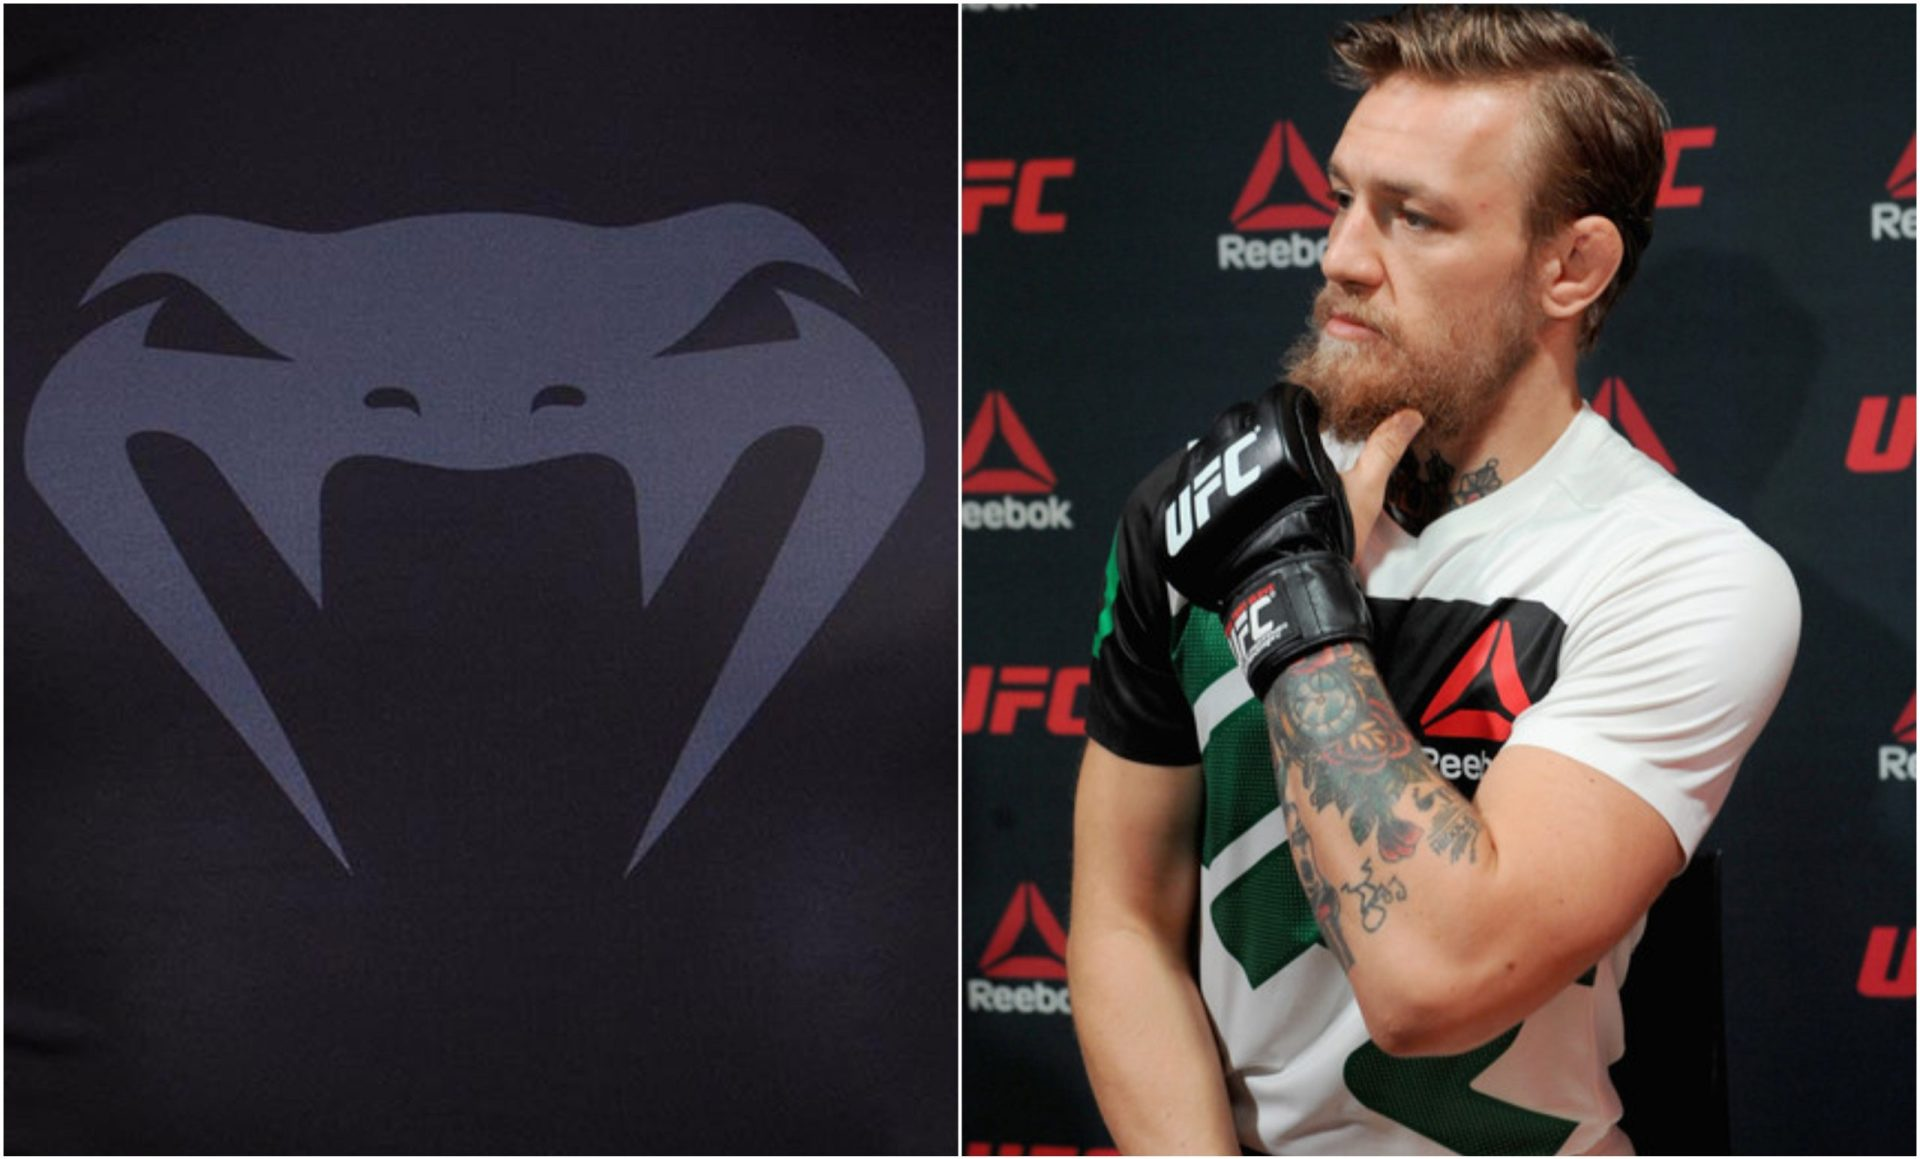 UFC announces which brand will replace Reebok  as outfitting partner! - Reebok